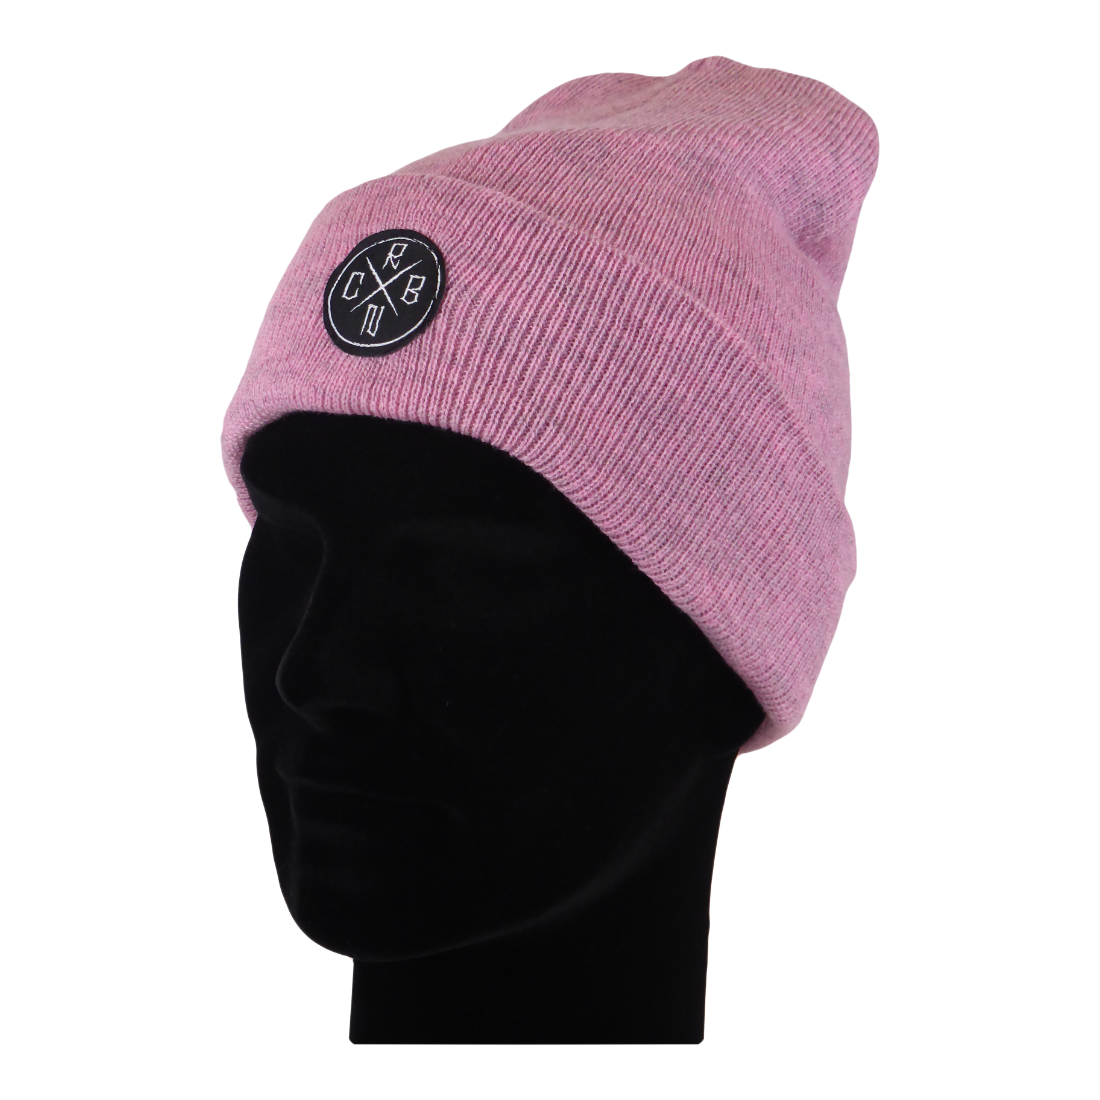 King Cobra Store muts geribbeld rib cuffed beanie wool knit streatchy streachable winter hat unisex adult acrylic acryl polyester regular fit sport ski snowboard fitness Carhartt The North Face Obey Element Herschel